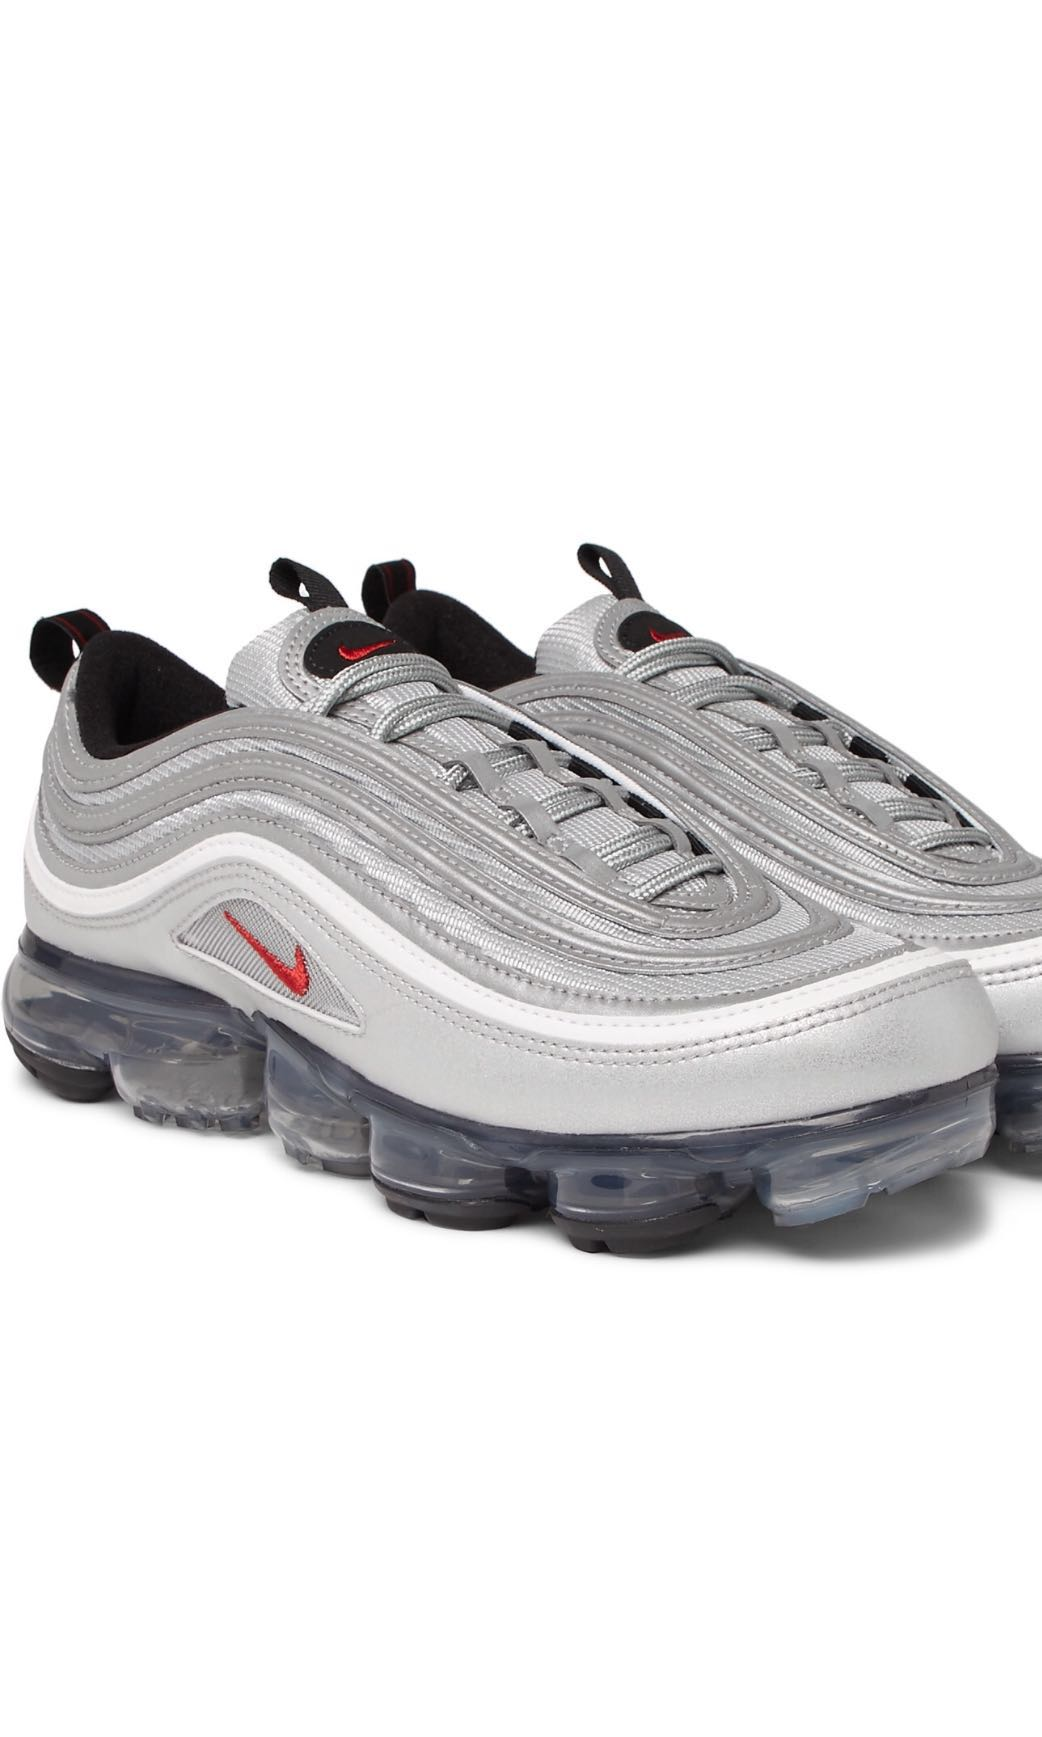 new style 1a7ec 5ef39 Nike Air Max 97 Vapormax